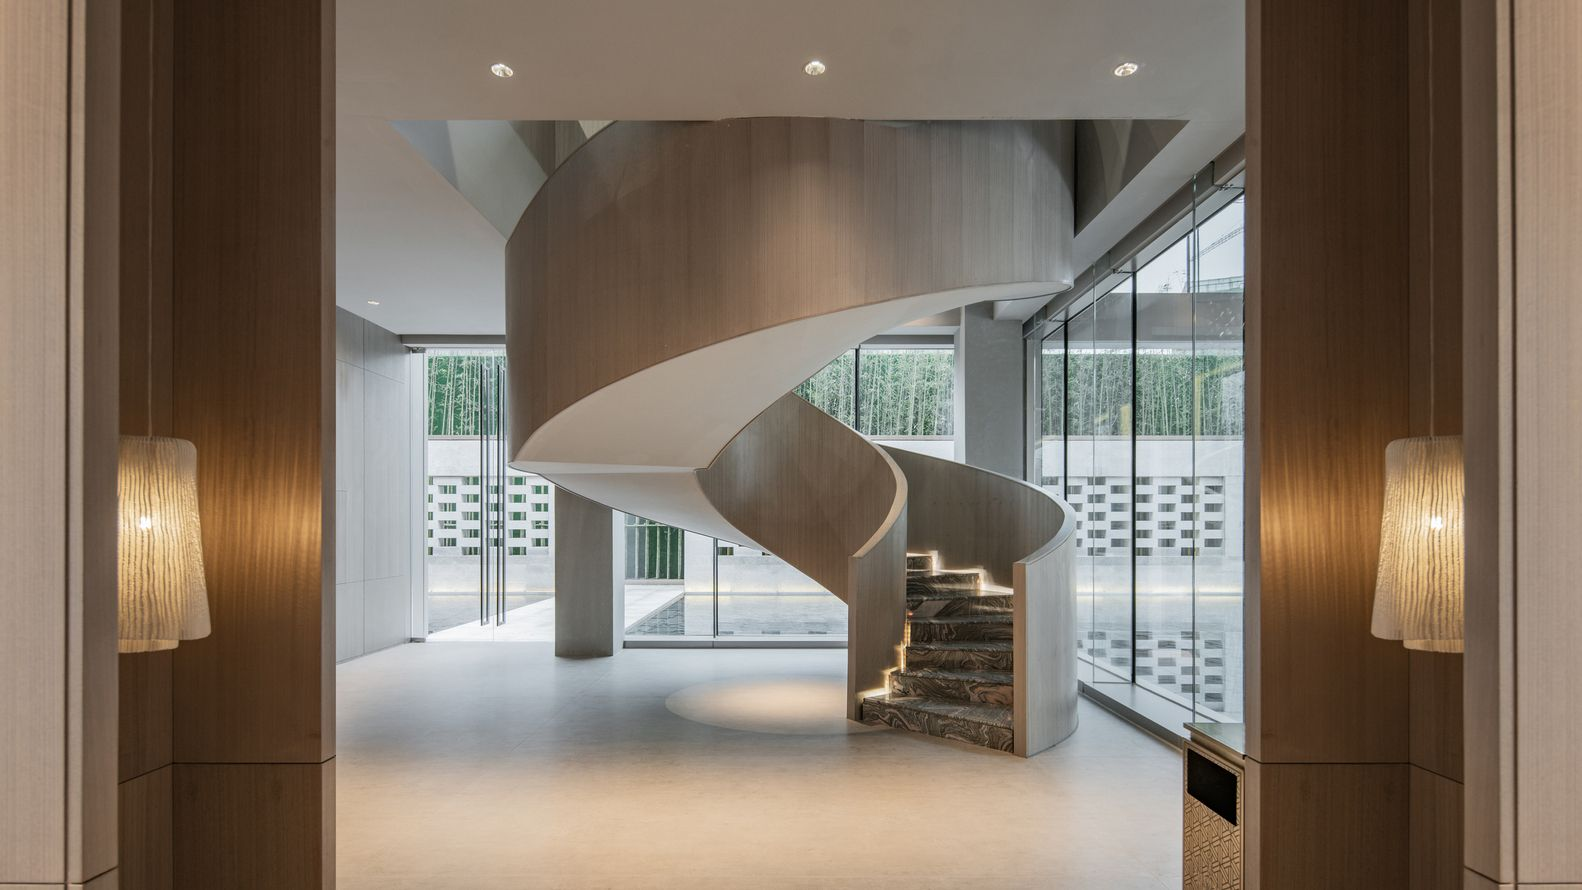 Best Gallery Of Vanke Emerald Park Lacime Architects 12 640 x 480